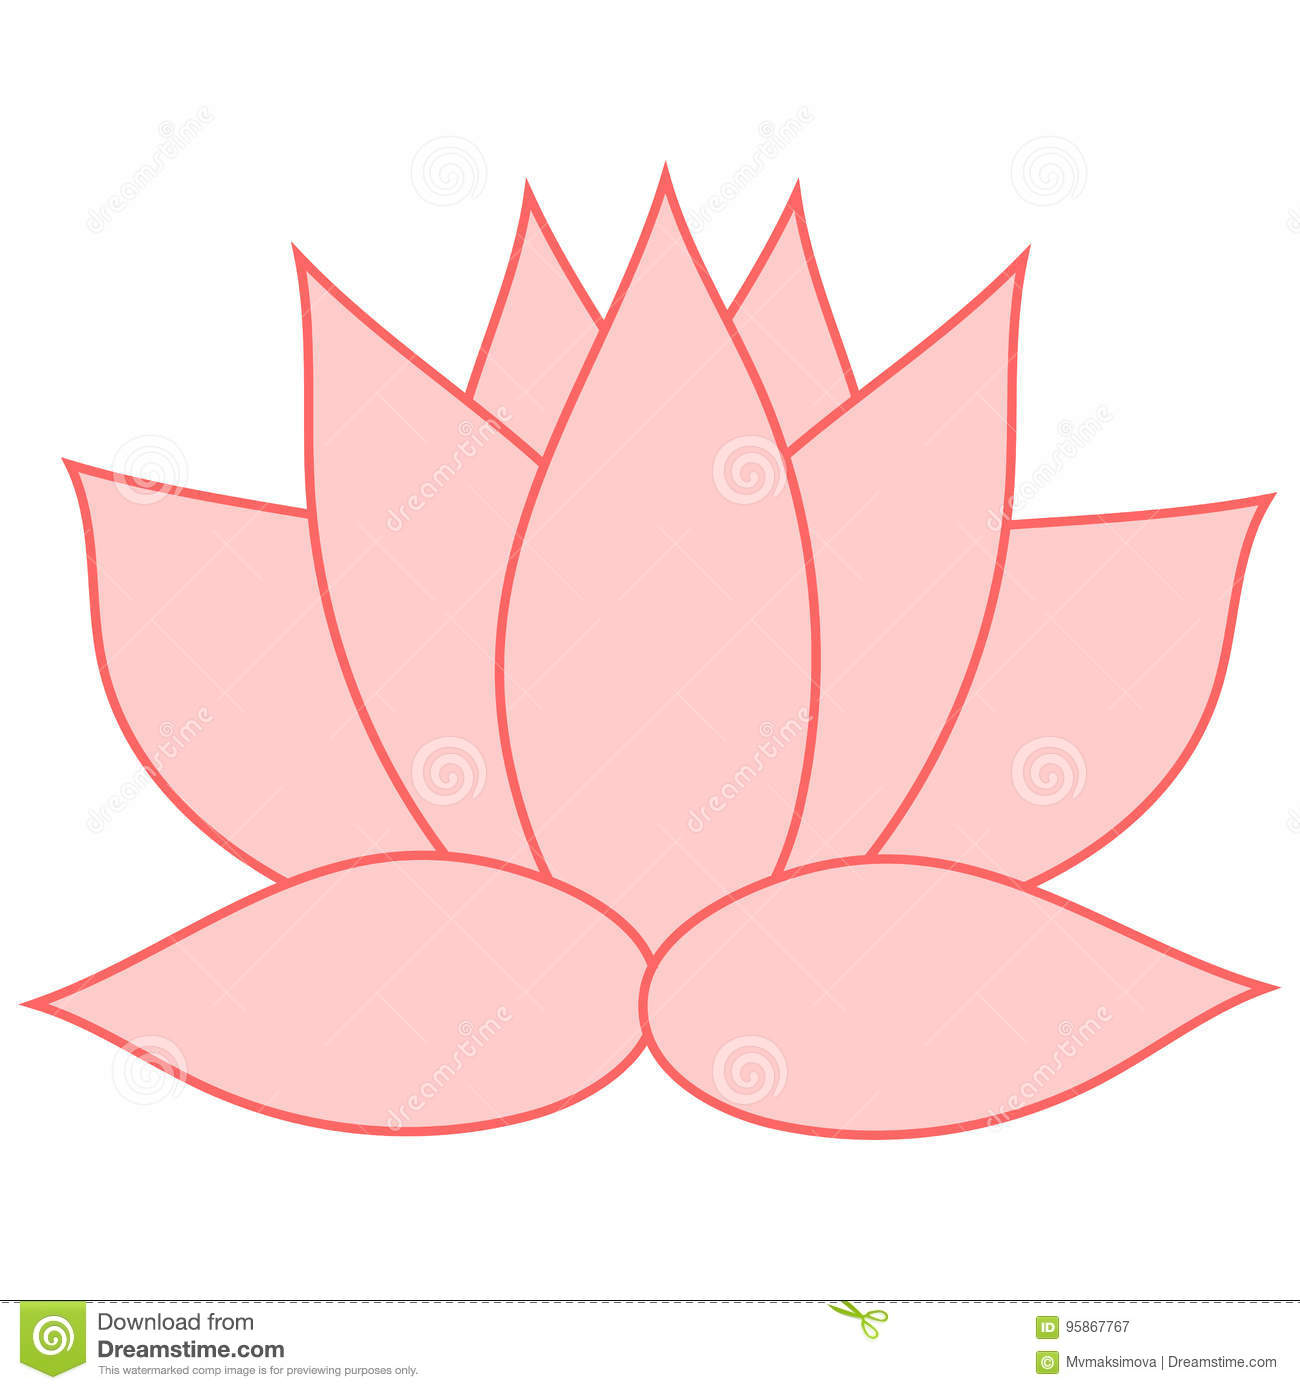 Lotus The Pink Flower Is A Symbol Of Purity And Enlightenment You